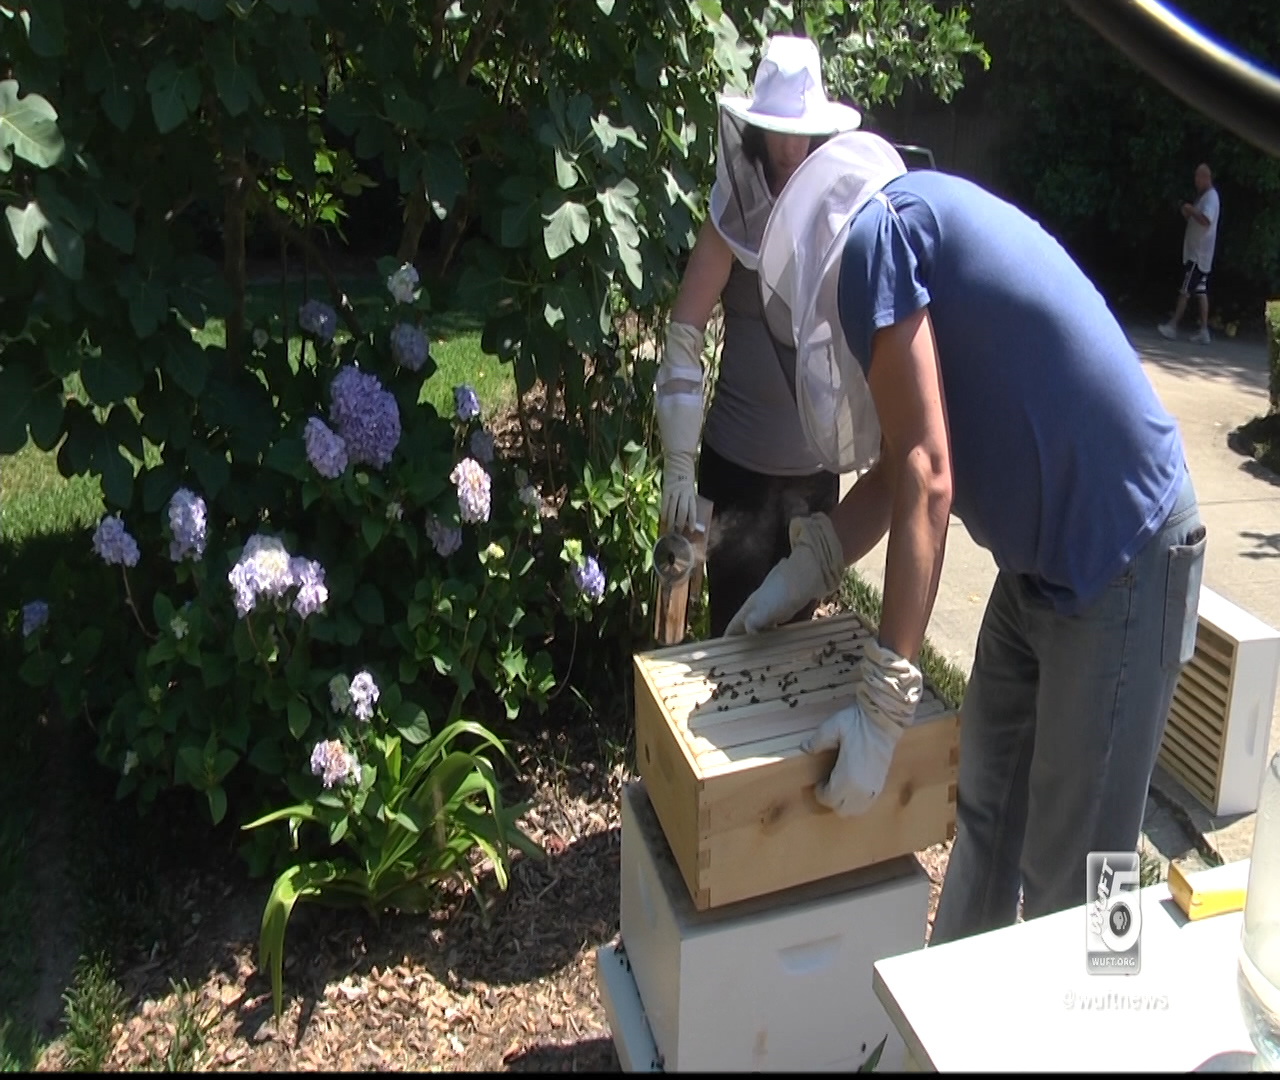 Backyard Beekeeping Hobby Is On The Rise in Gainesville ...